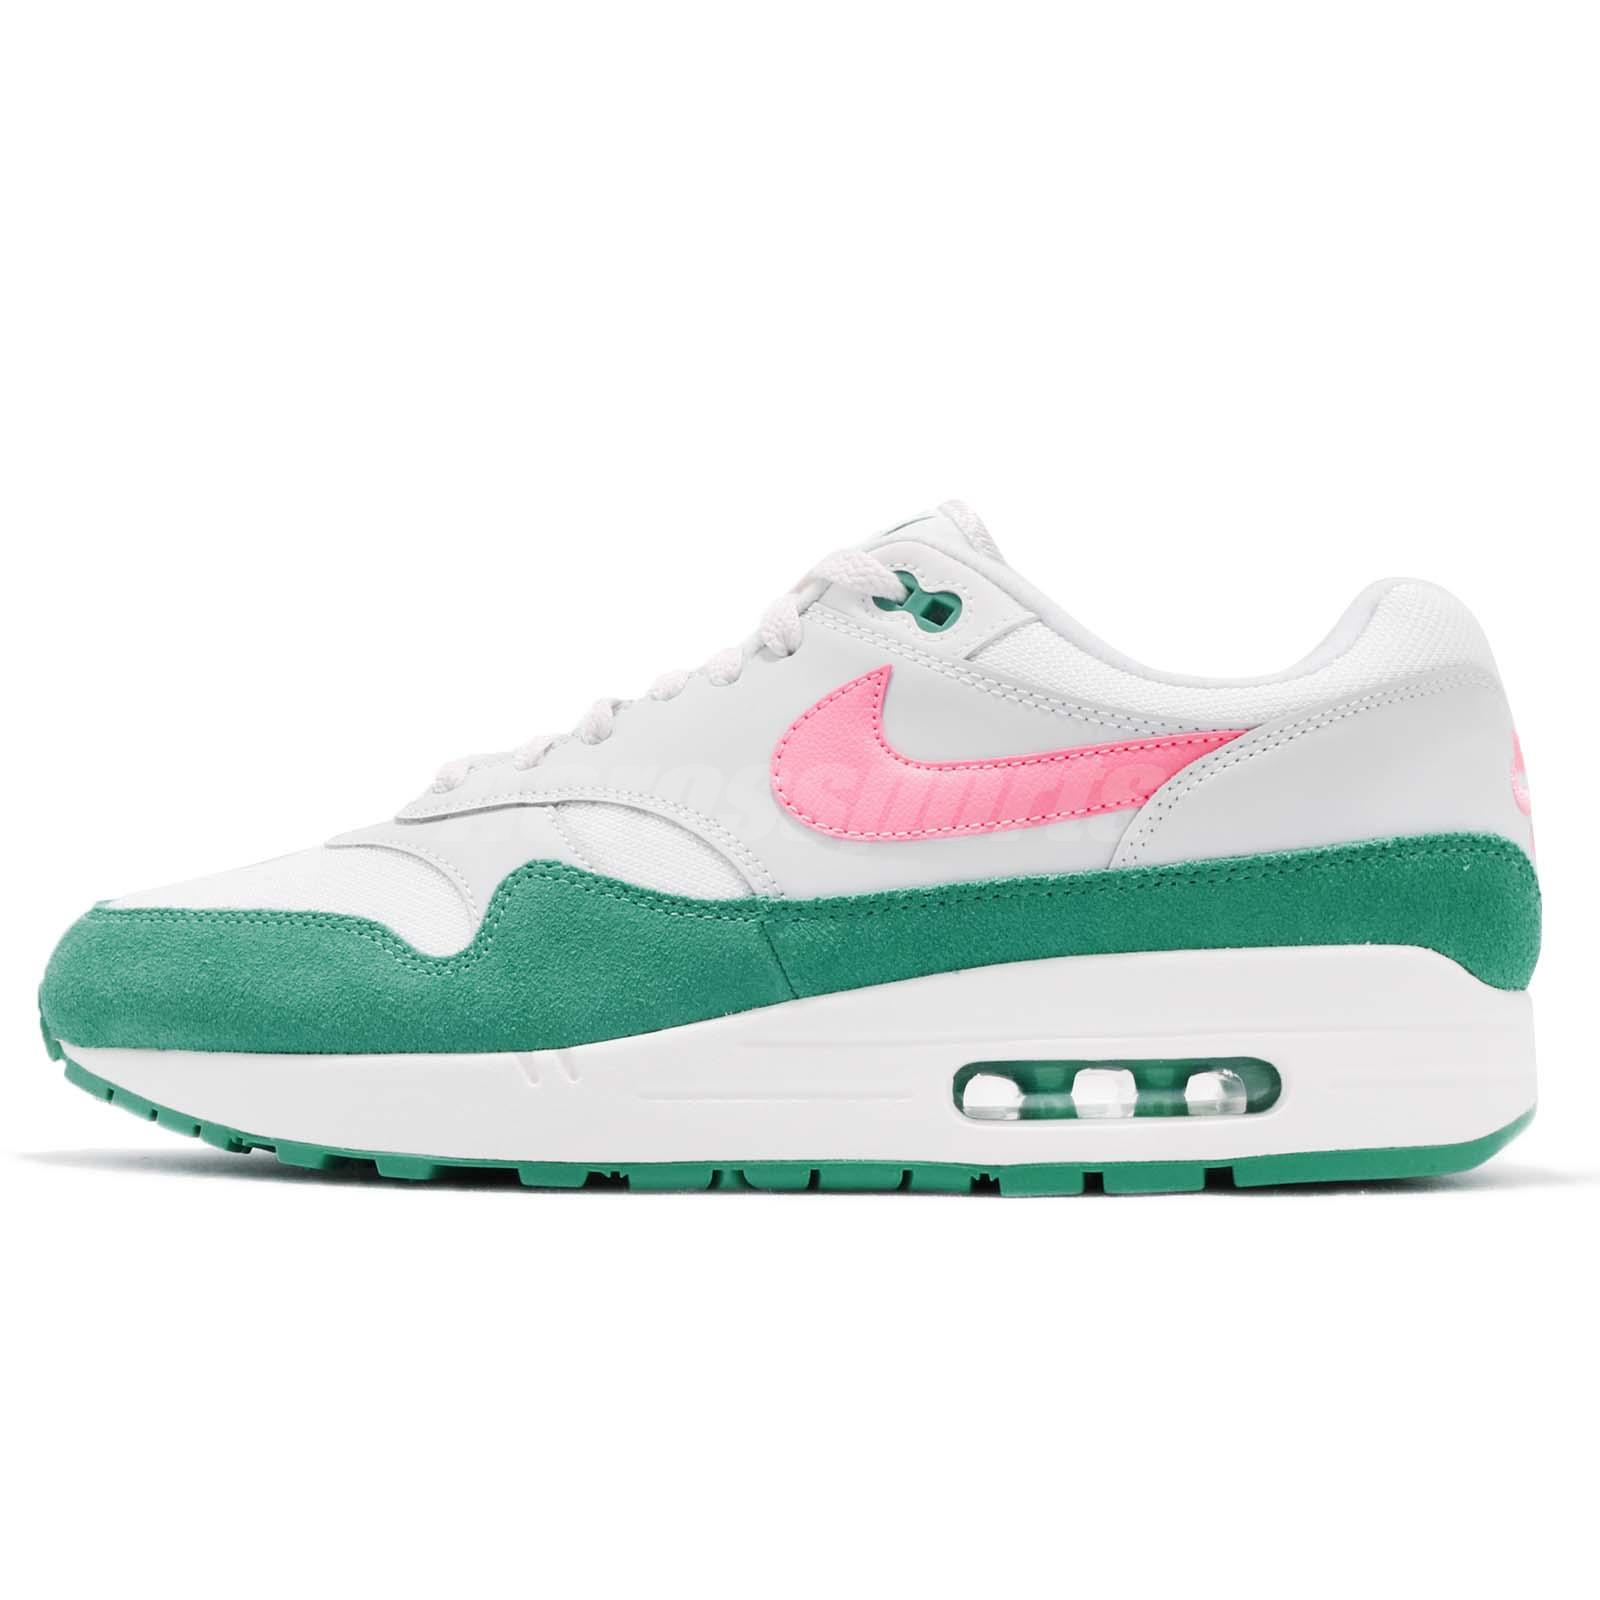 de326a501426 Nike Air Max 1 Watermelon South Beach Green Men Running Shoes Sneaker  AH8145-106